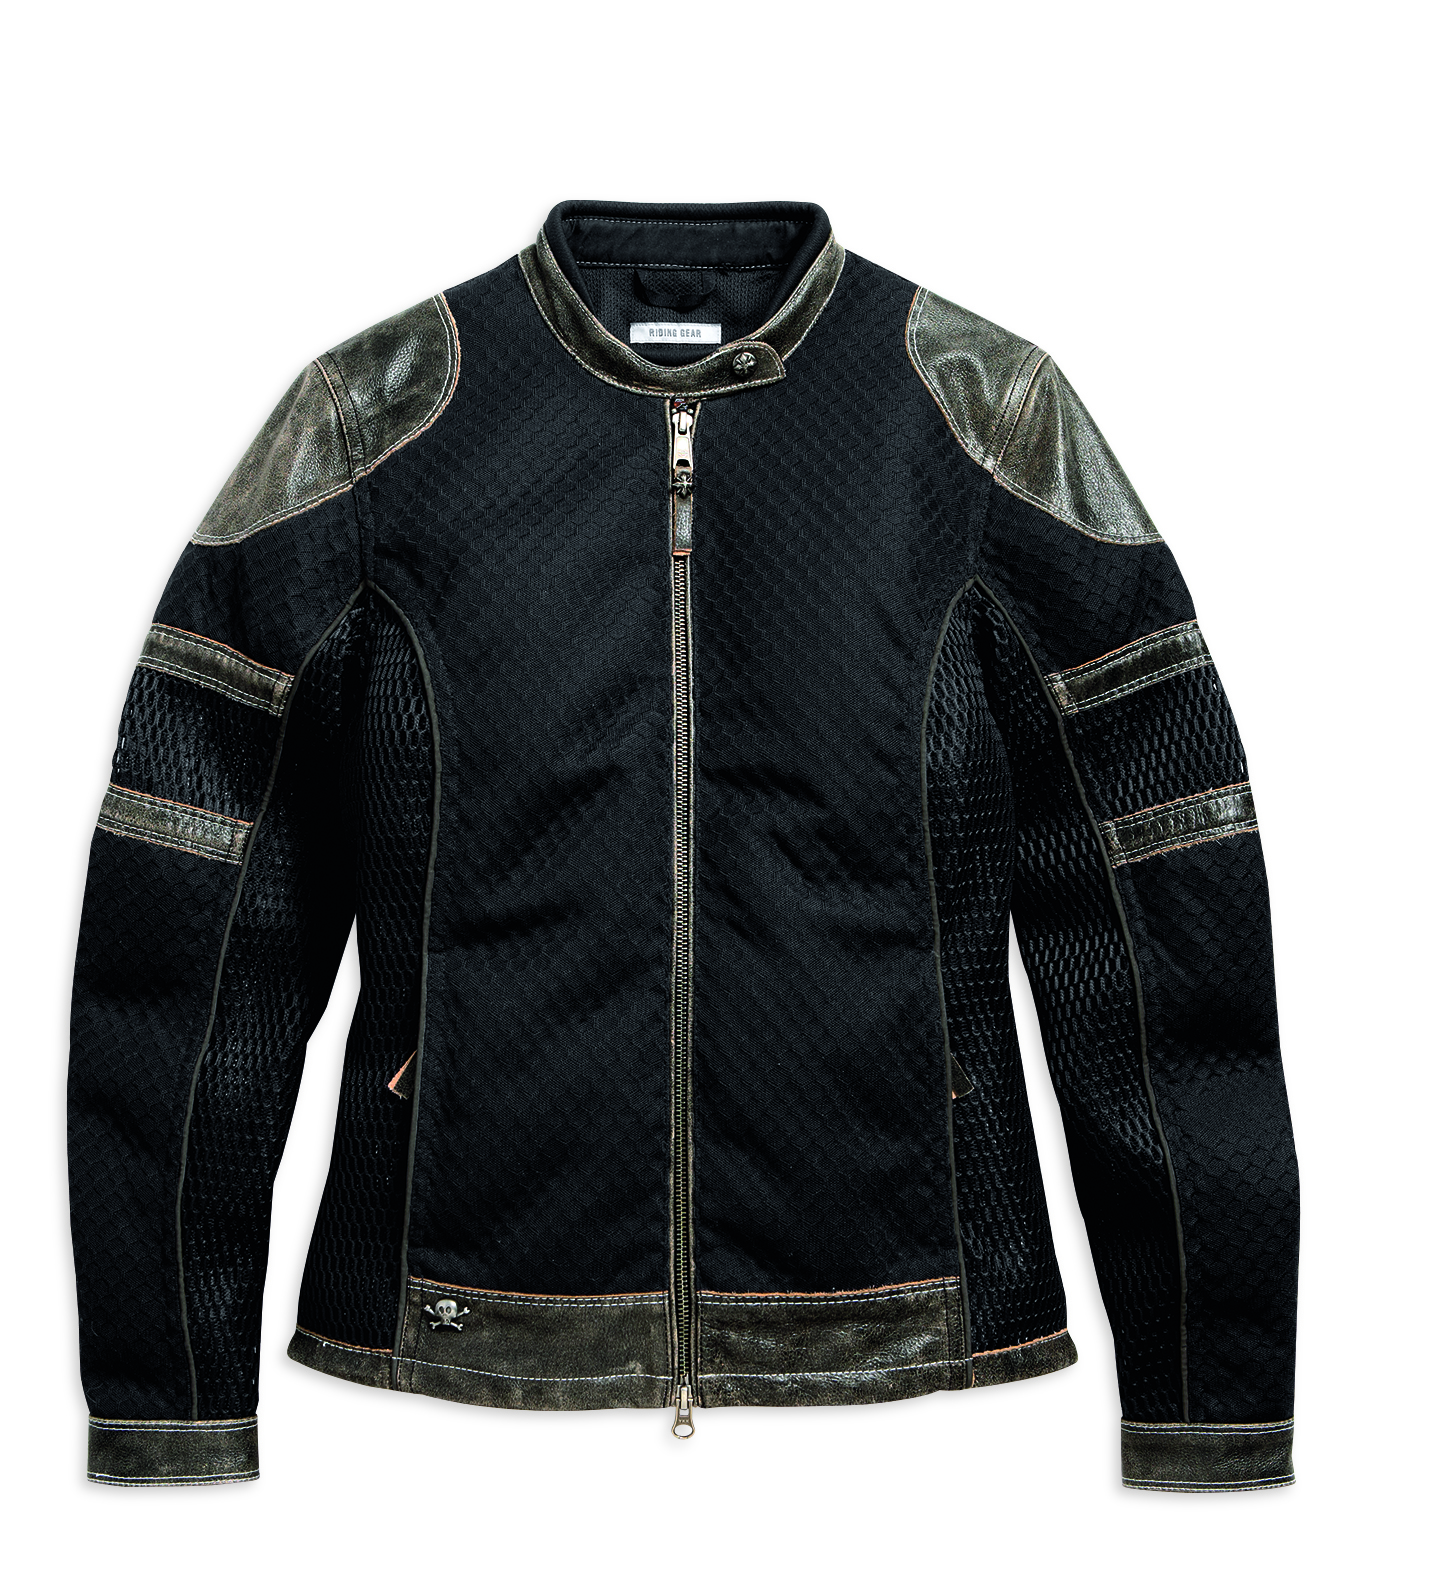 Harley Davidson Fathers Day Gift Riding Gear Jacket